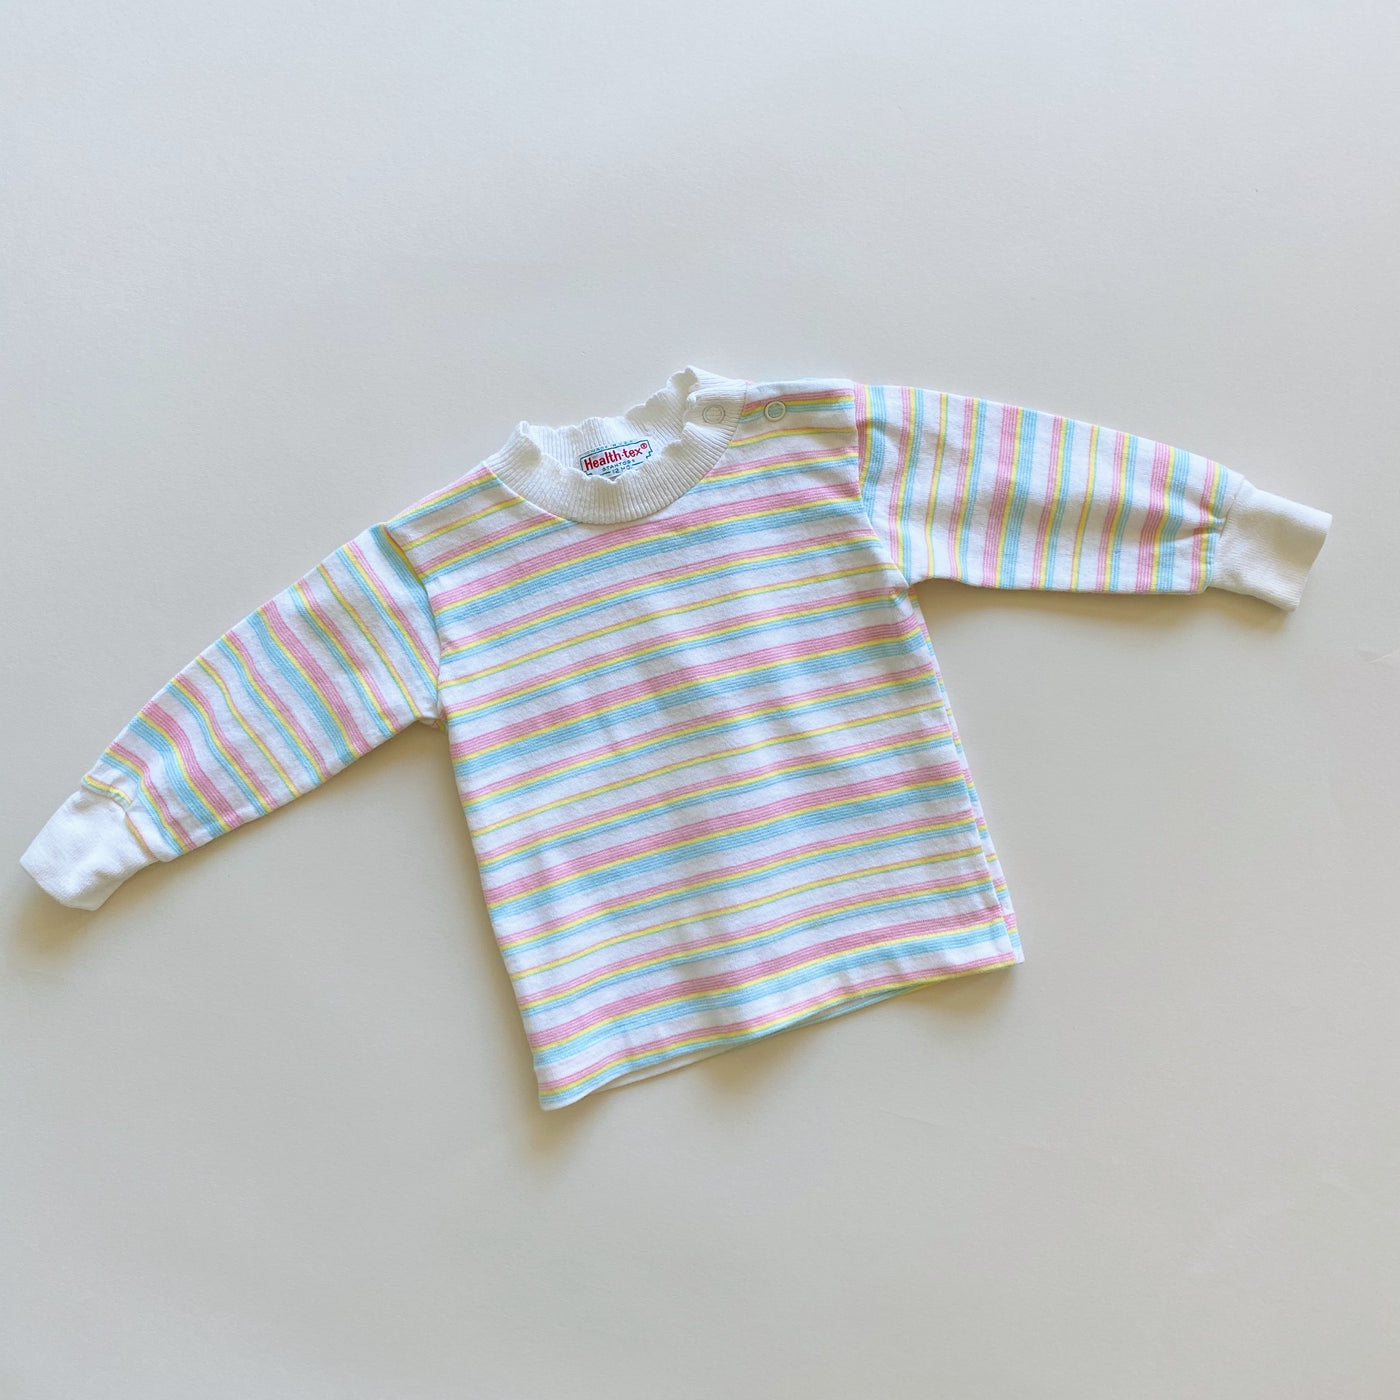 Vintage Health-Tex Striped Top / Size 12M